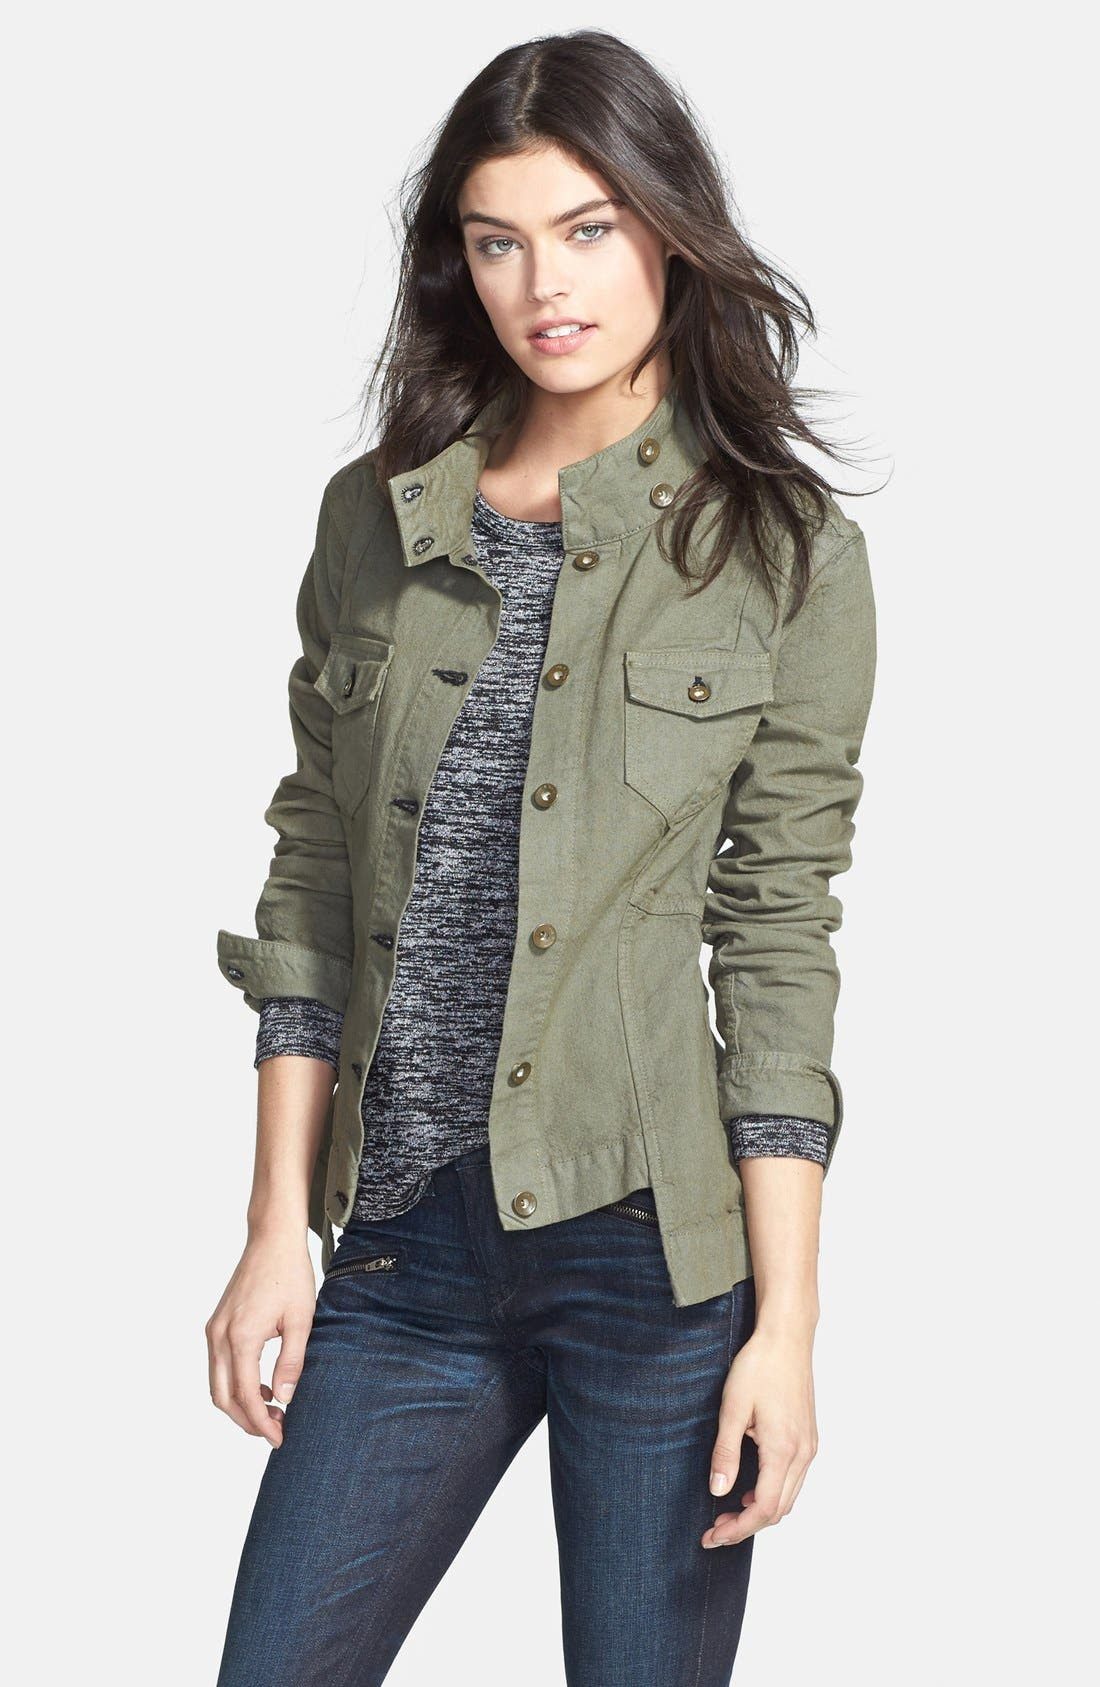 Alternate Image 1 Selected - rag & bone/JEAN 'Chamberlain' Stand Collar Step Hem Jacket (Nordstrom Exclusive)